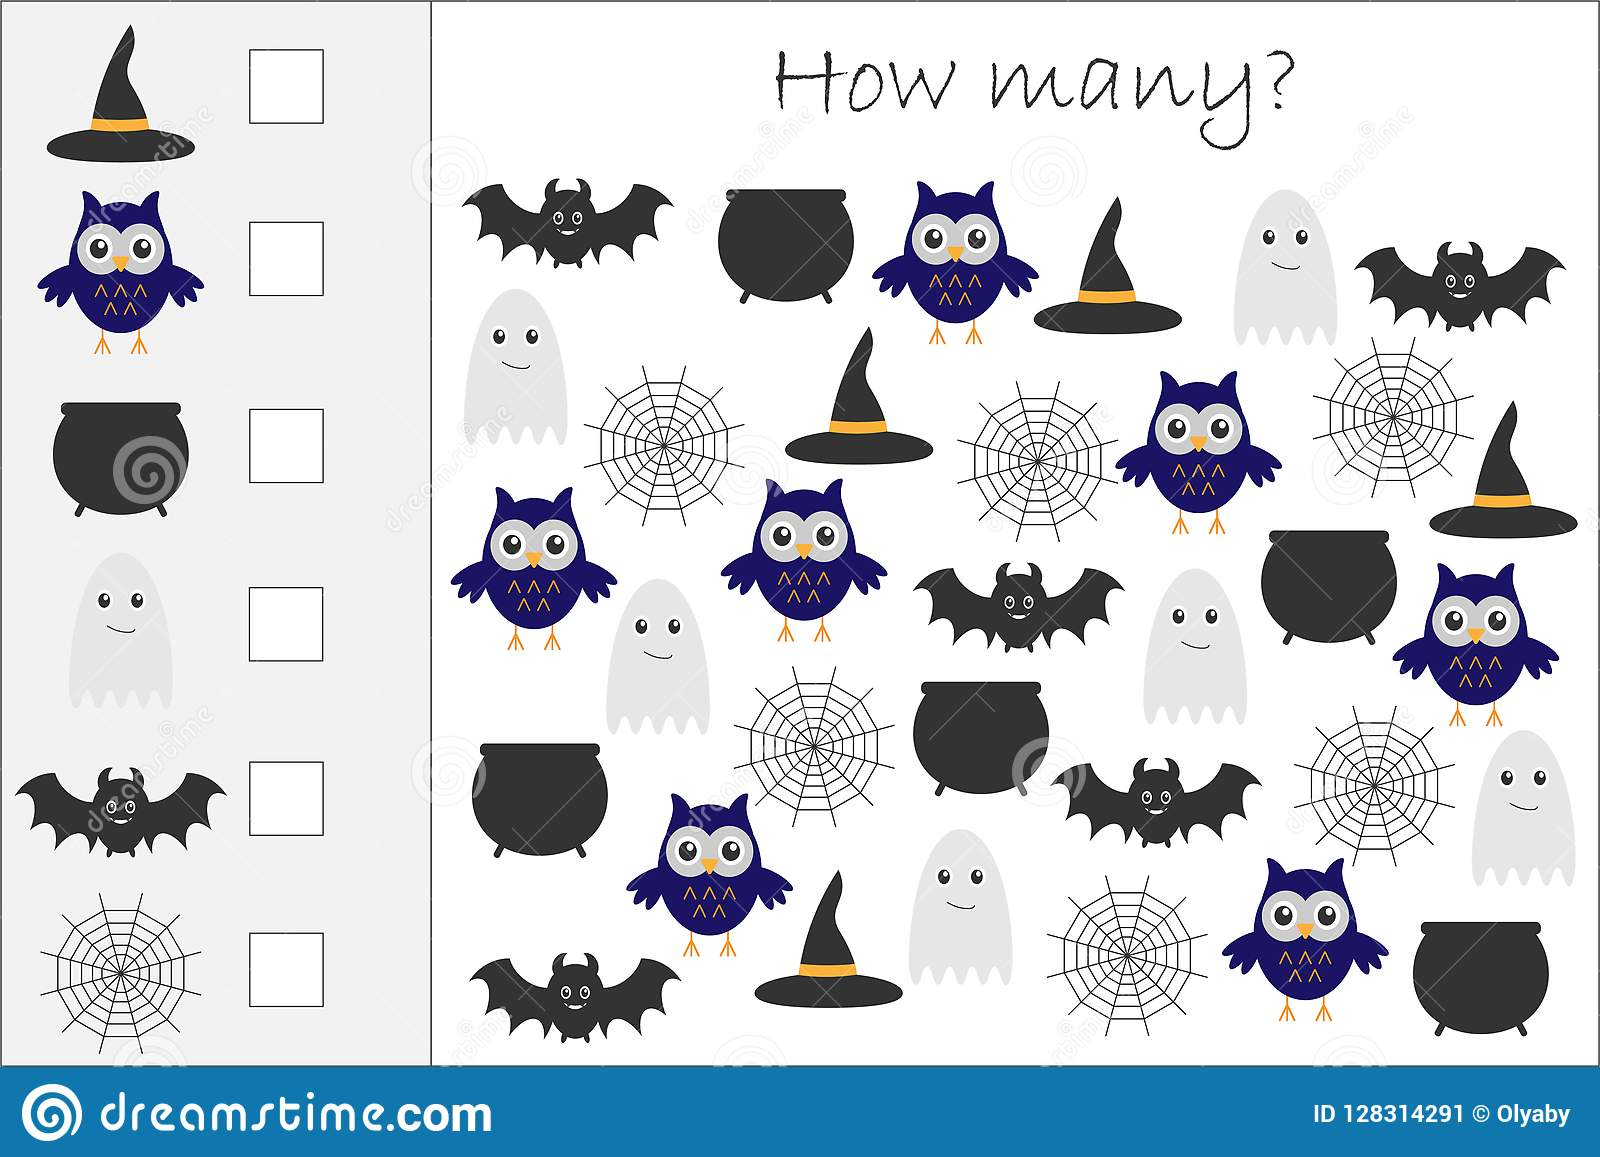 How Many Counting Game With Halloween Pictures For Kids